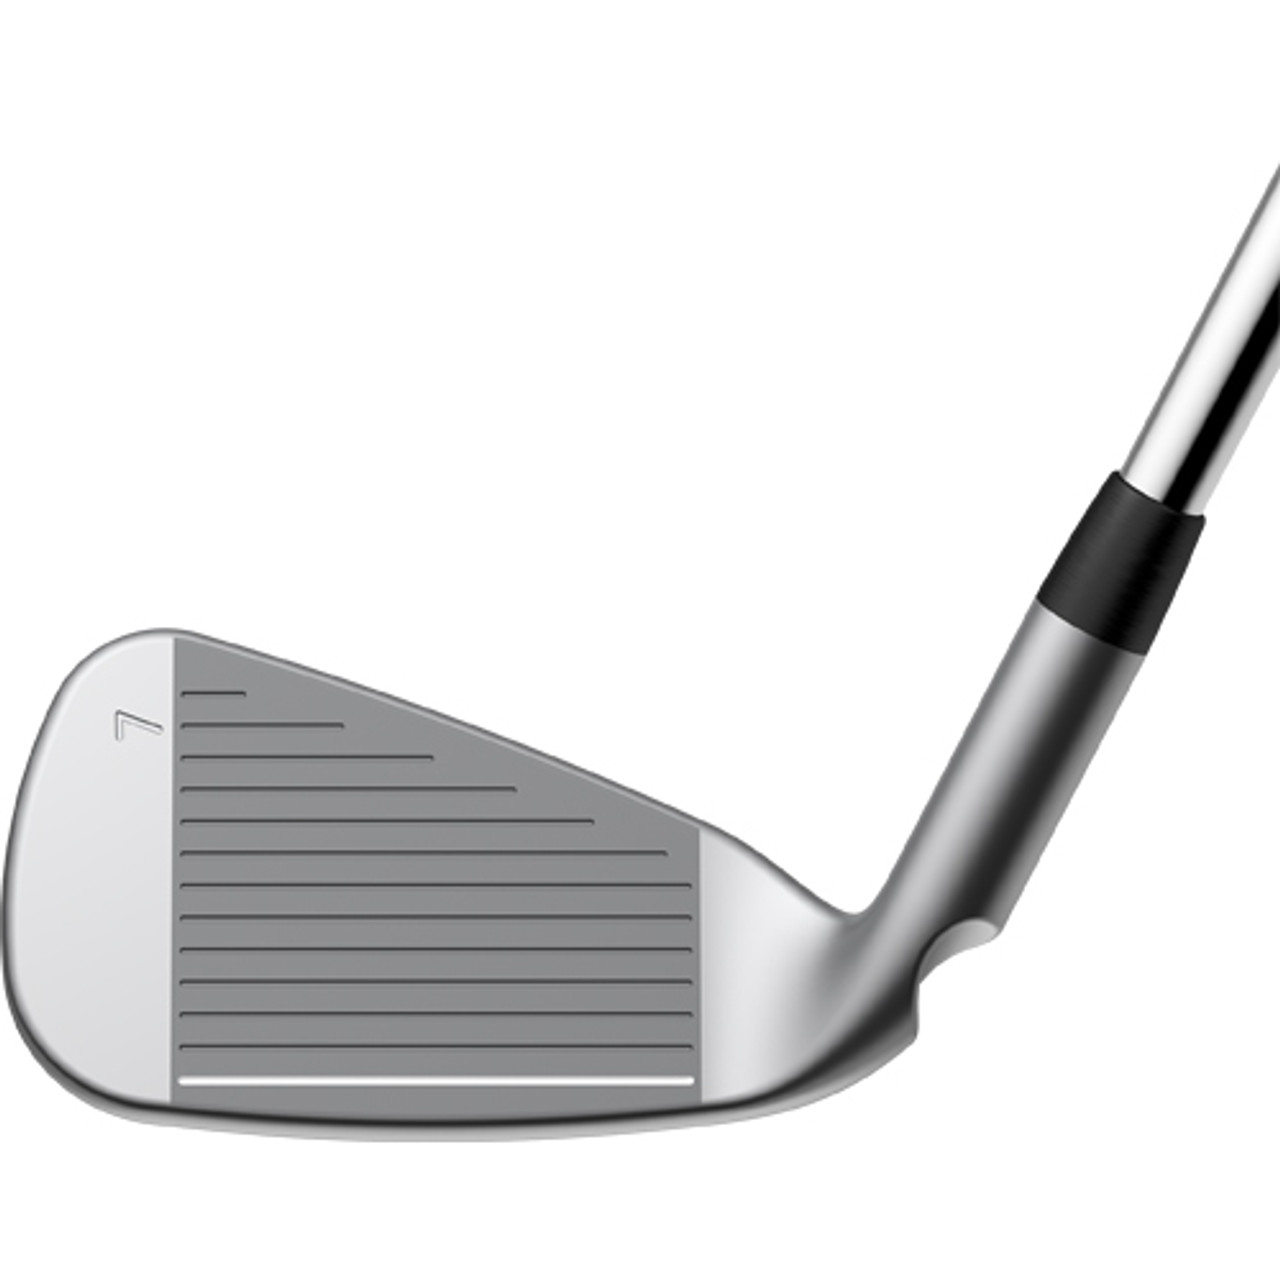 Ping G Individual Irons and Wedges